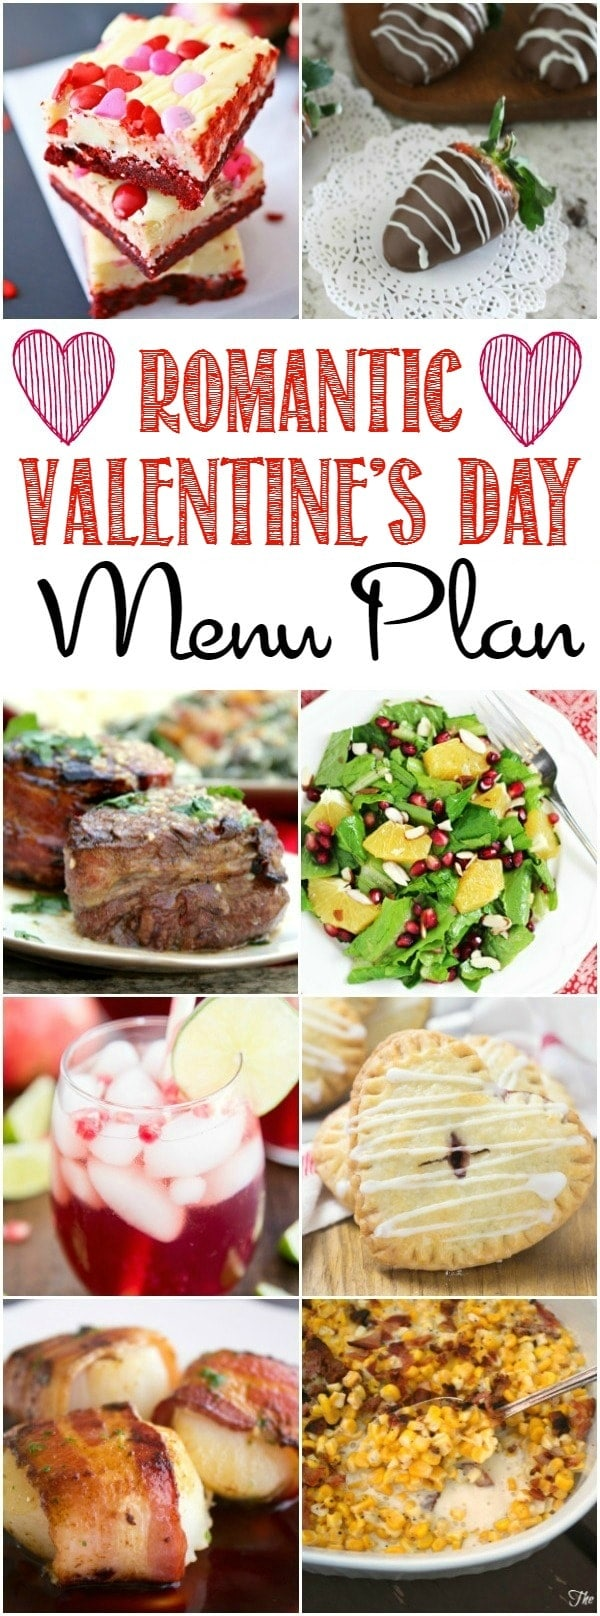 Everything you need to make a Romantic Valentine's Day dinner at home - from sparkly drinks, to chocolatey desserts, tender steak and more!